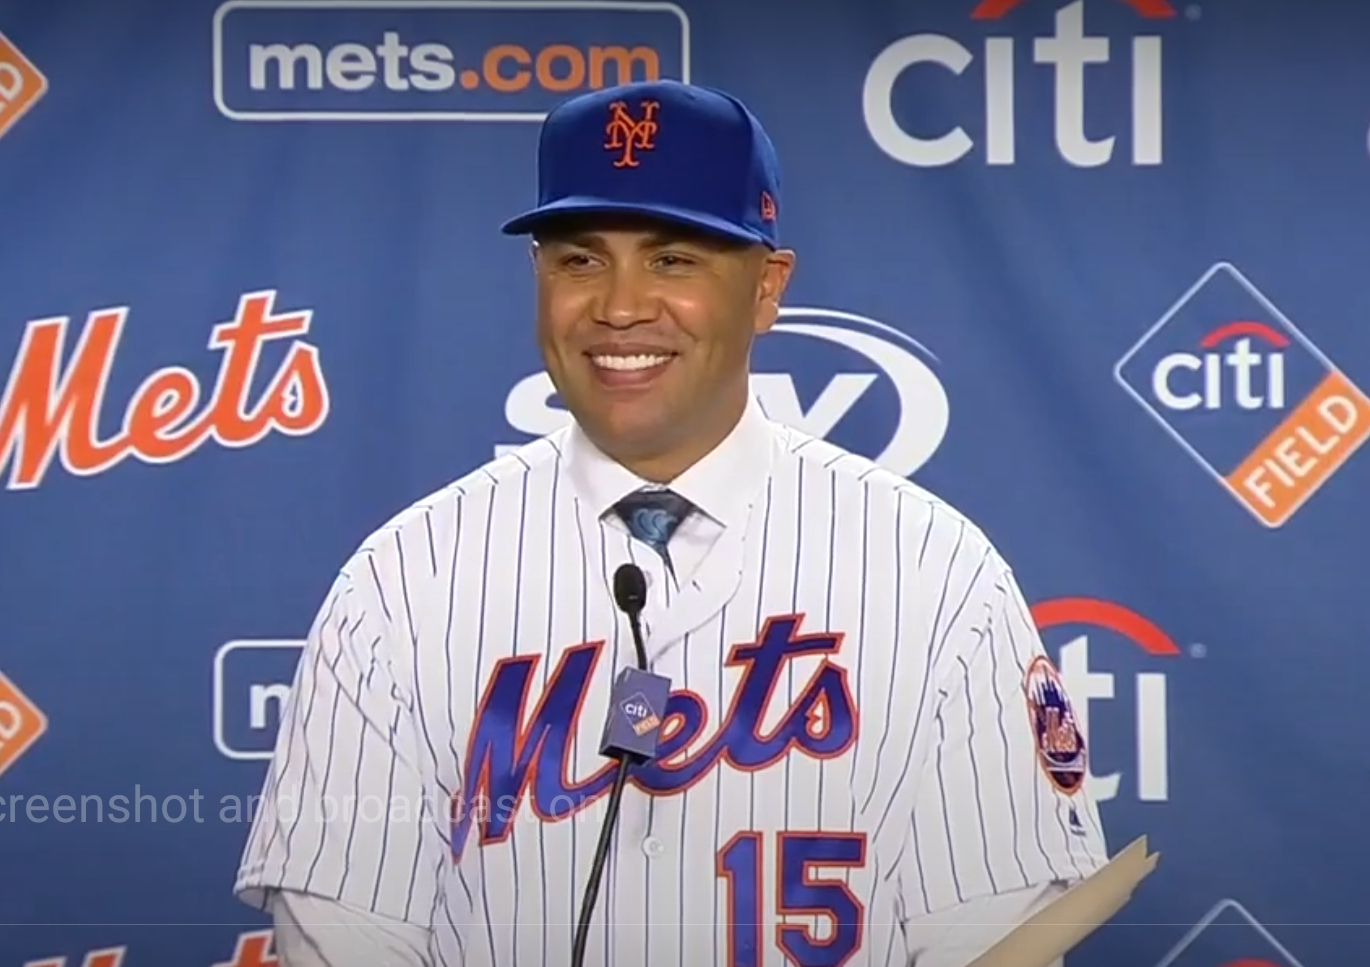 What You Need to Know About New Mets' Manager Carlos Beltran